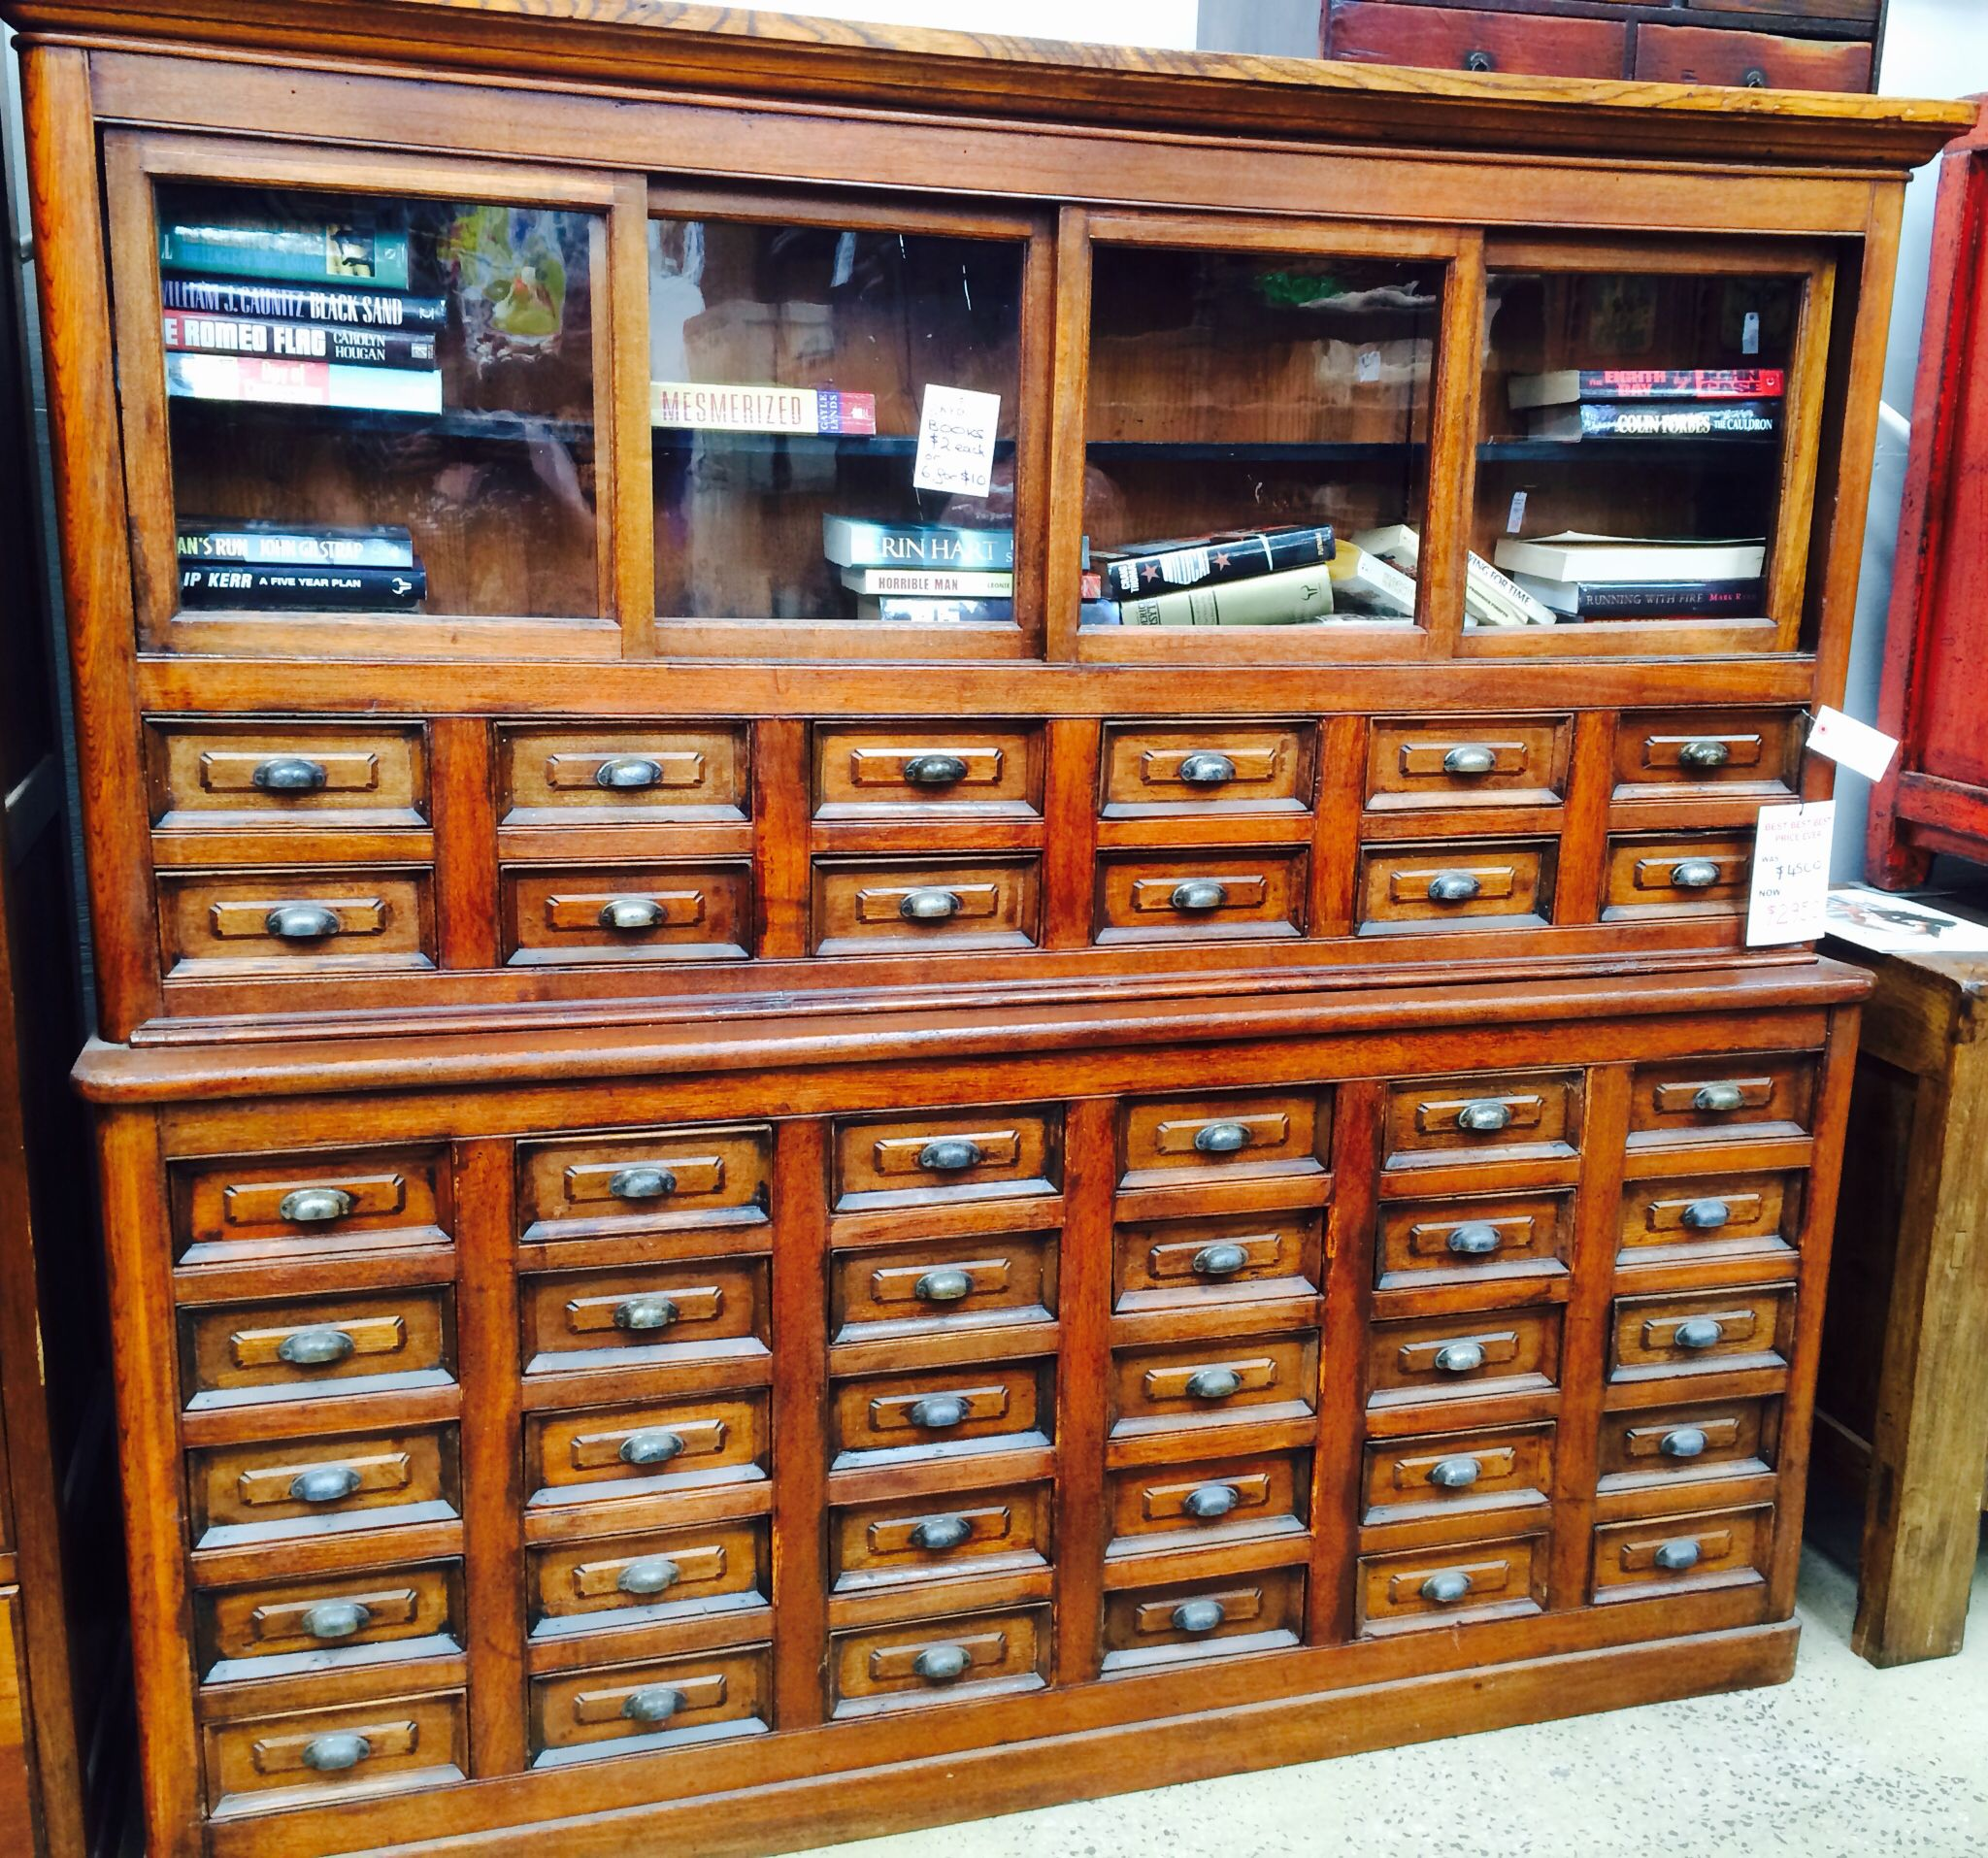 Vintage apothecary cabinet for sale - My Japanese Shop Drawers For Haberdashery But Was Used For Apothecary I Will Be Using Them For Craft Haberdashery Drawers With My Antique Spool Cabinet On